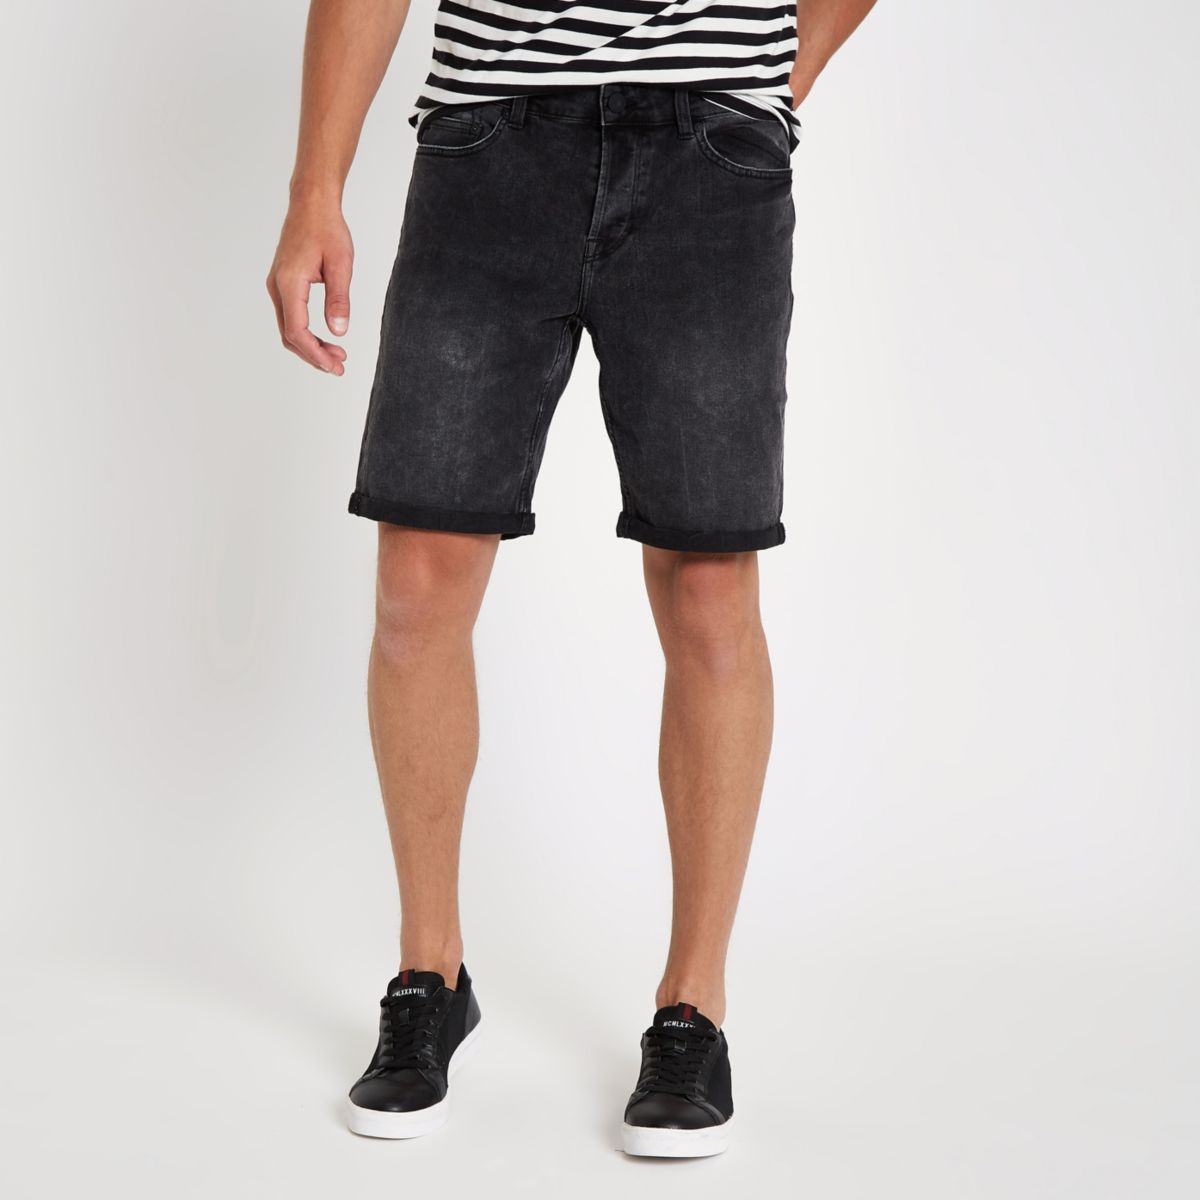 Only & Sons grey denim shorts